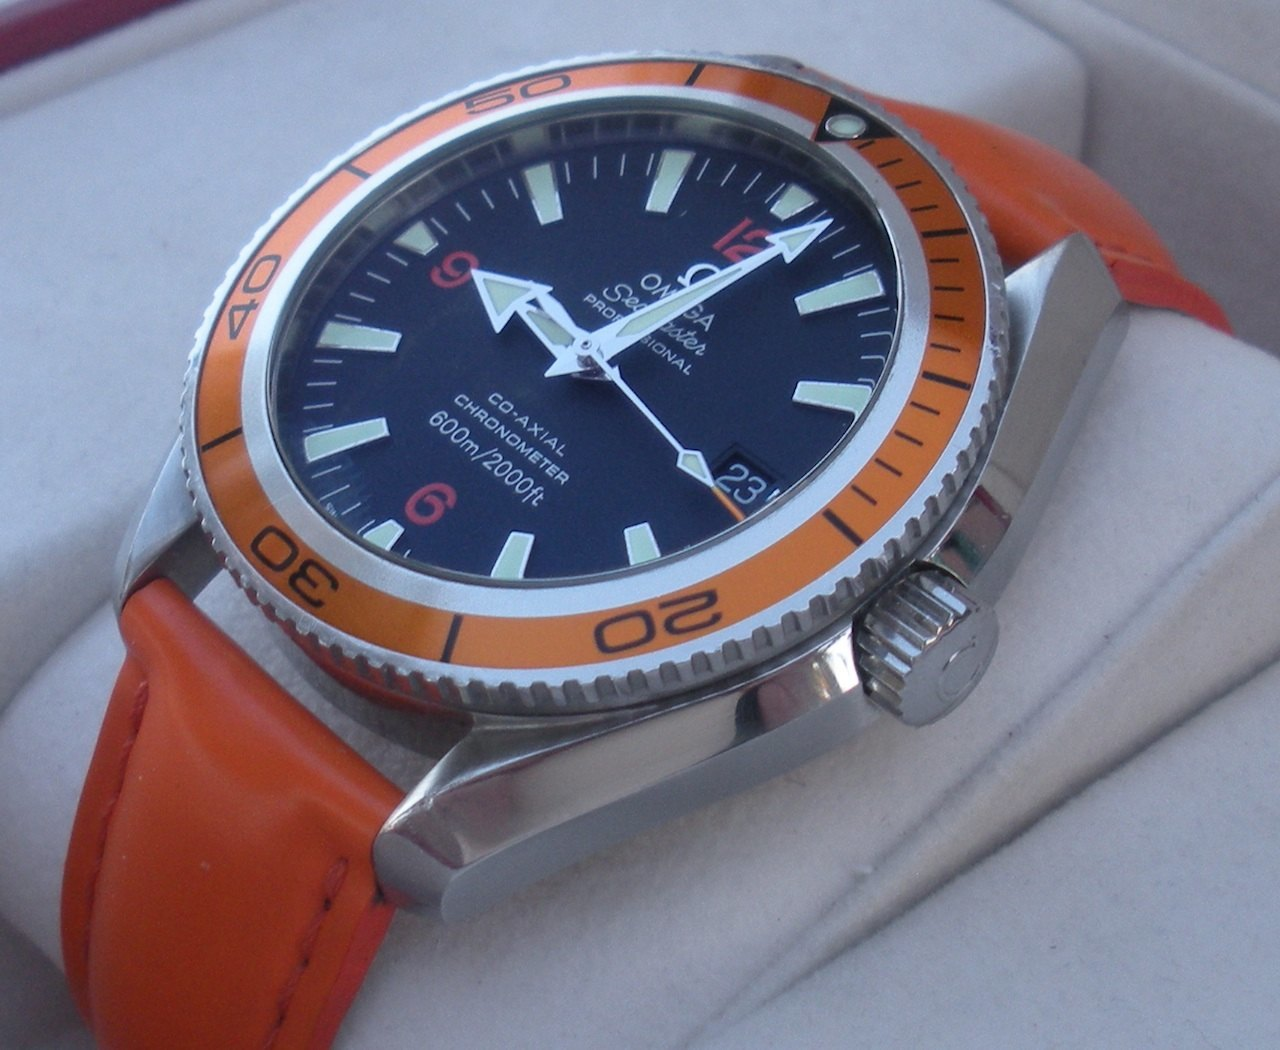 Omega Seamaster Professional Planet Ocean 2209.50.00